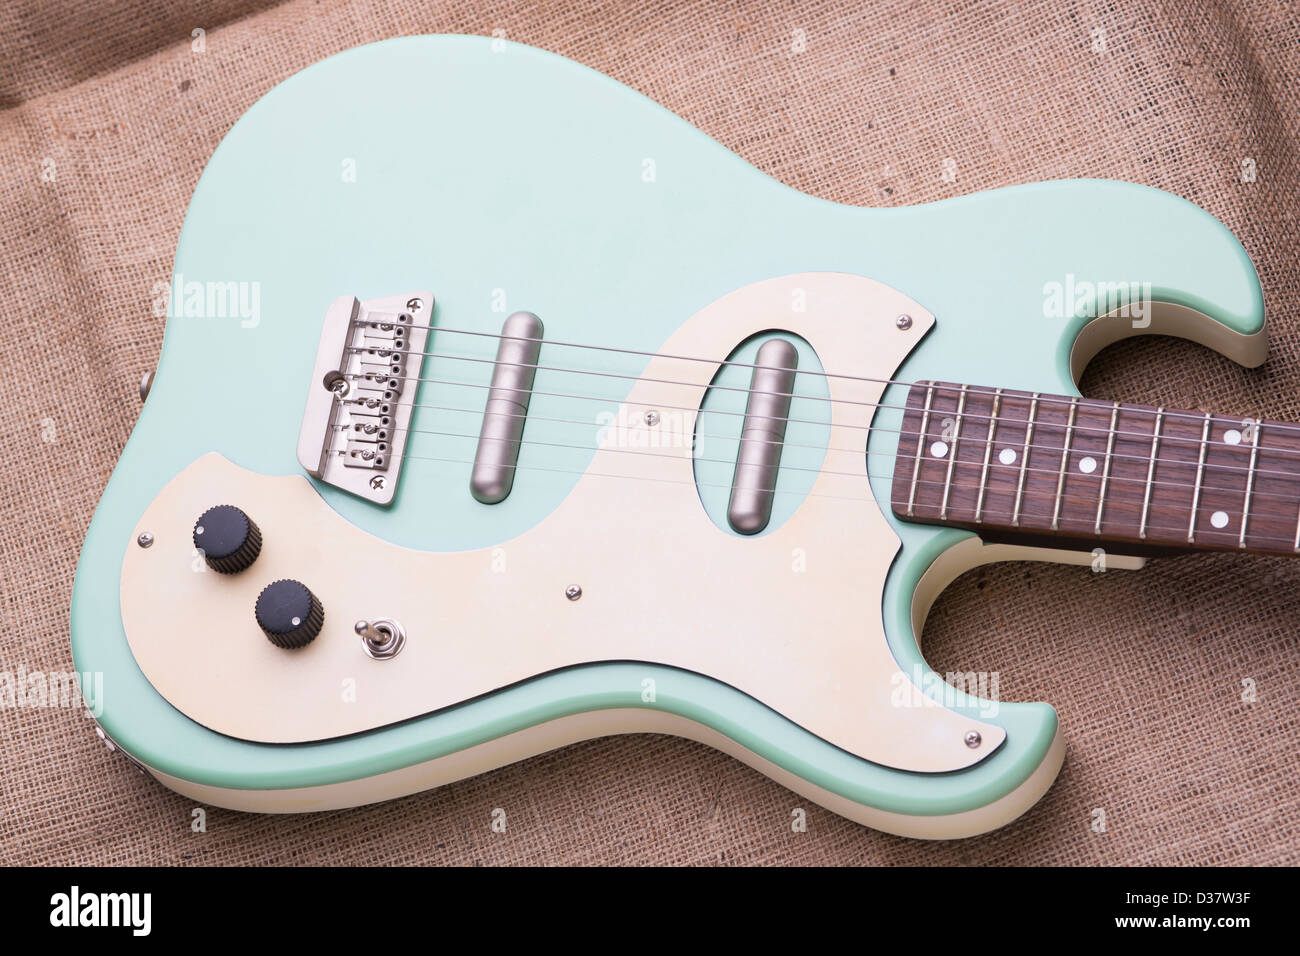 Danelectro Baby Blue Electric Guitar On A Hessian Sack With Soft Natural Lighting